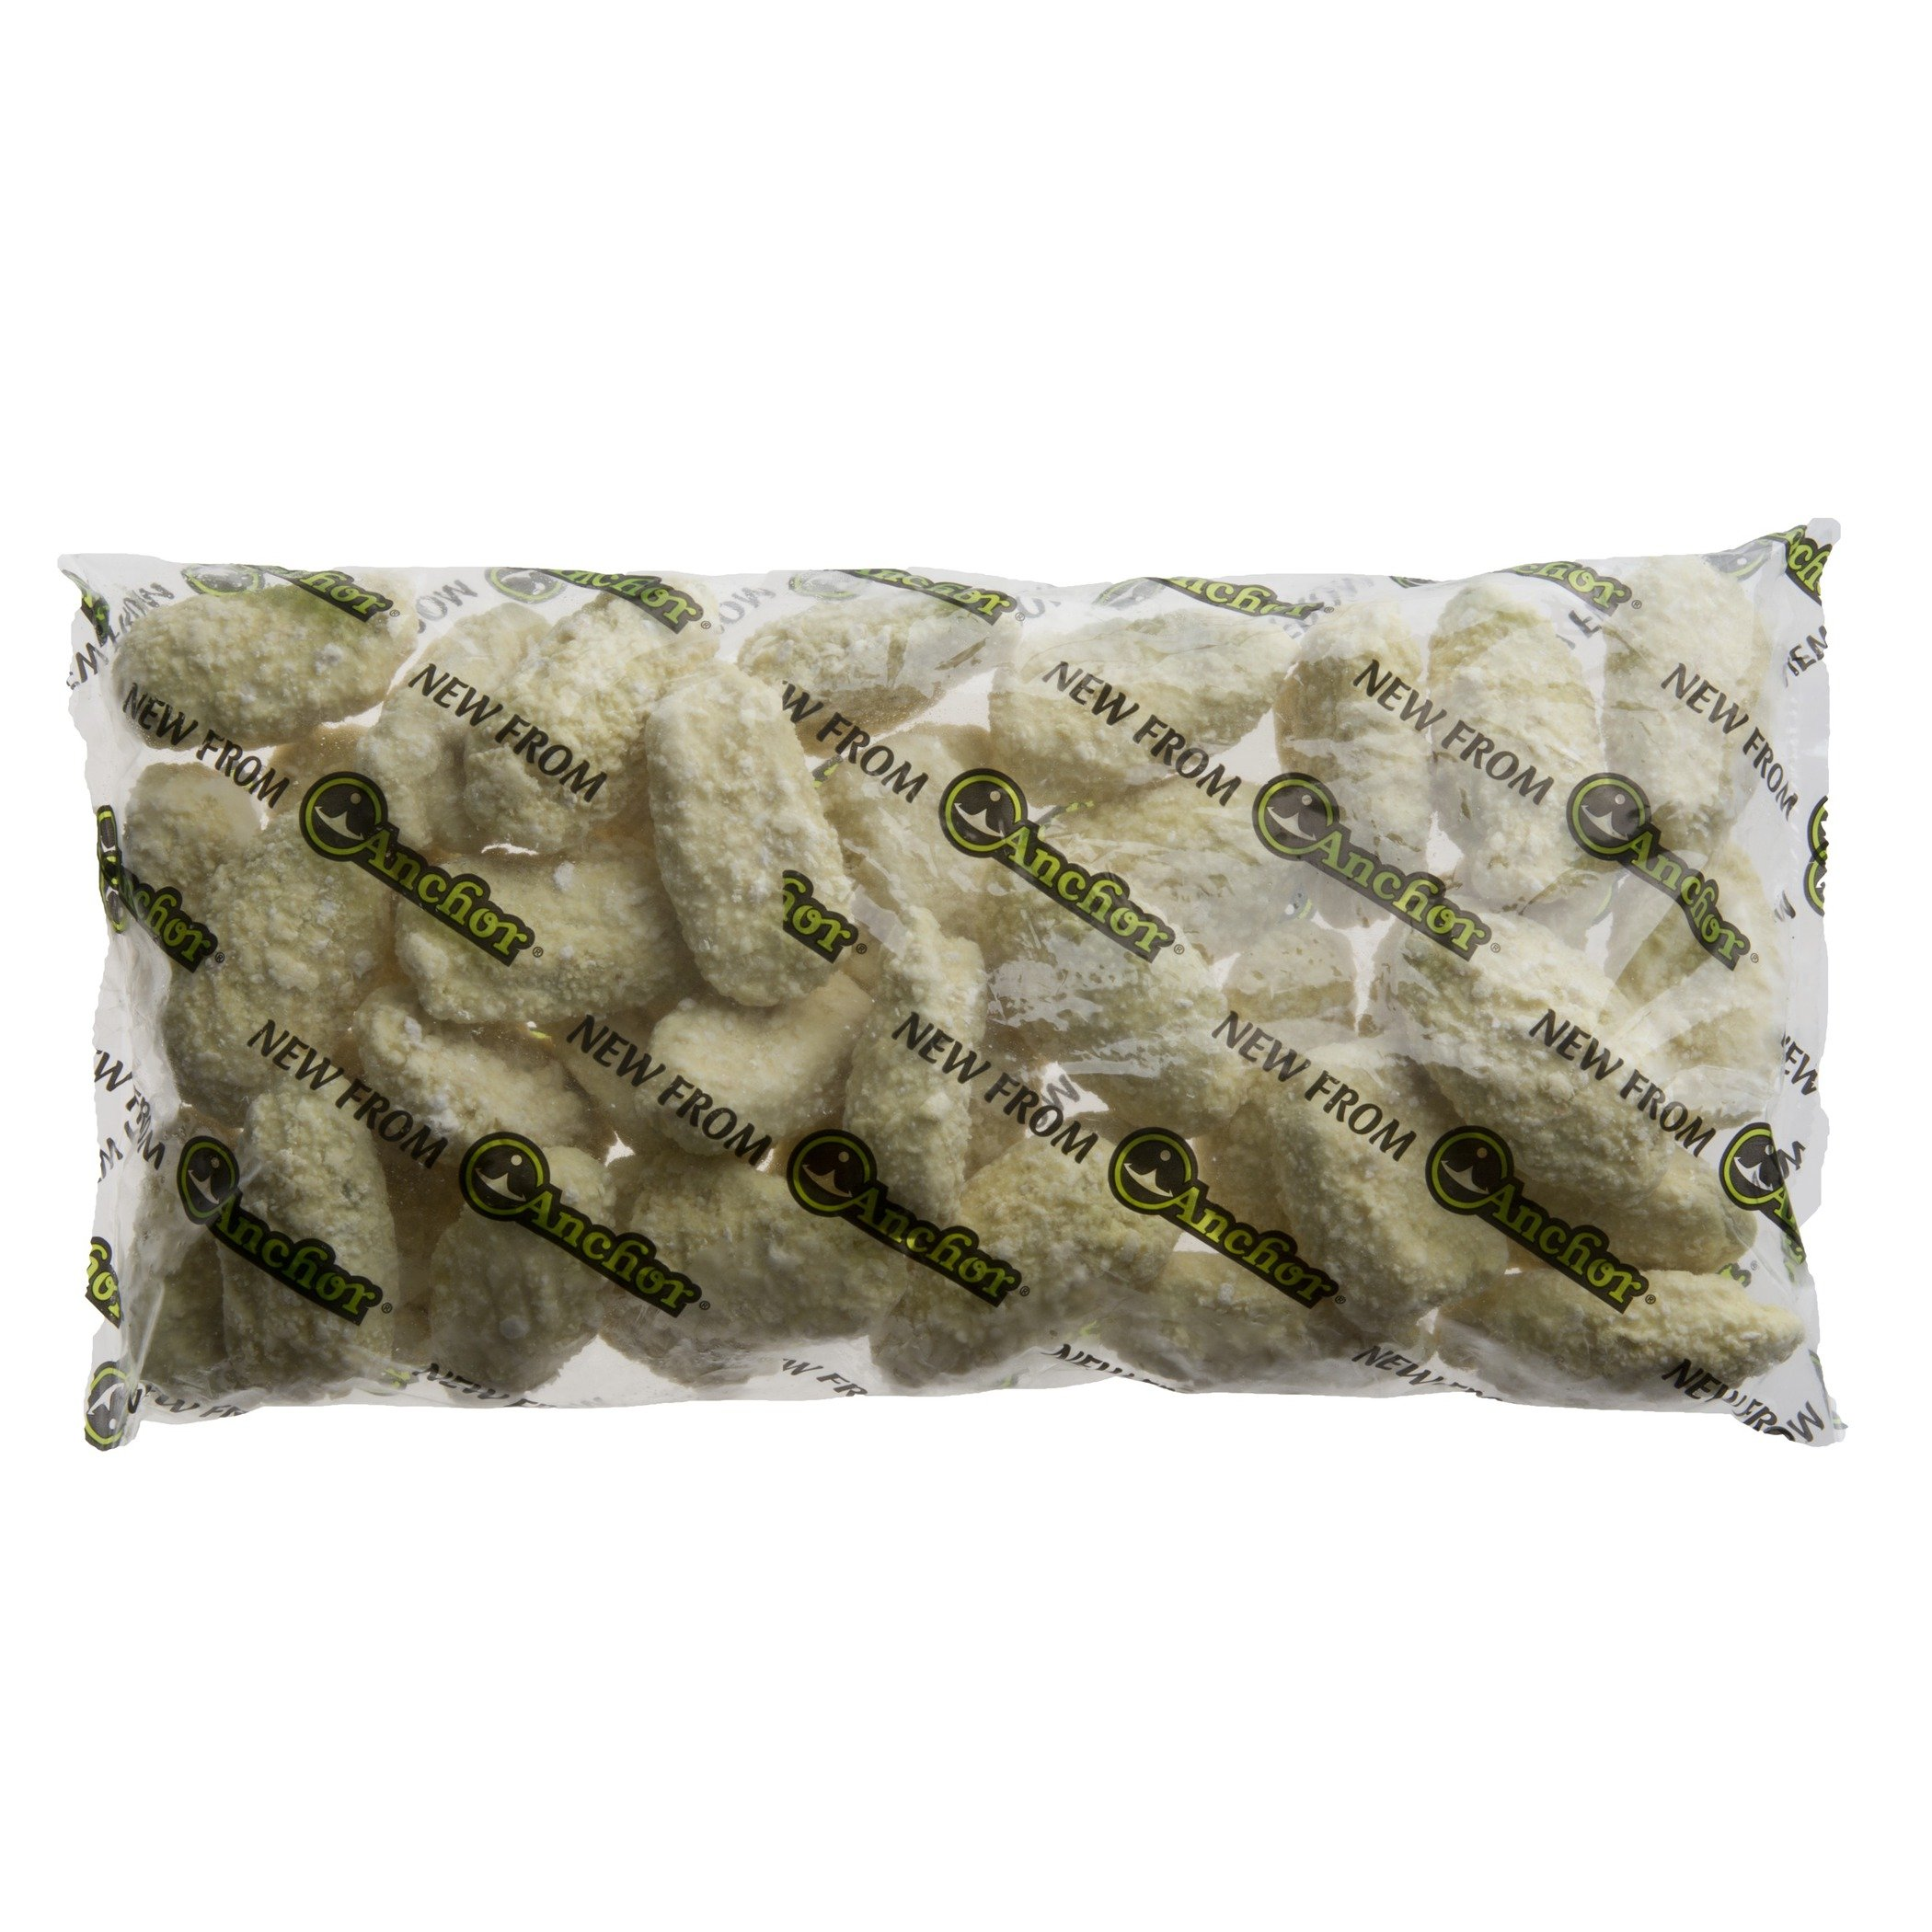 Anchor Cream Cheese and Bacon Stuffed Breaded Jalapenos 3 lb, (Pack of 4) by McCain (Image #2)